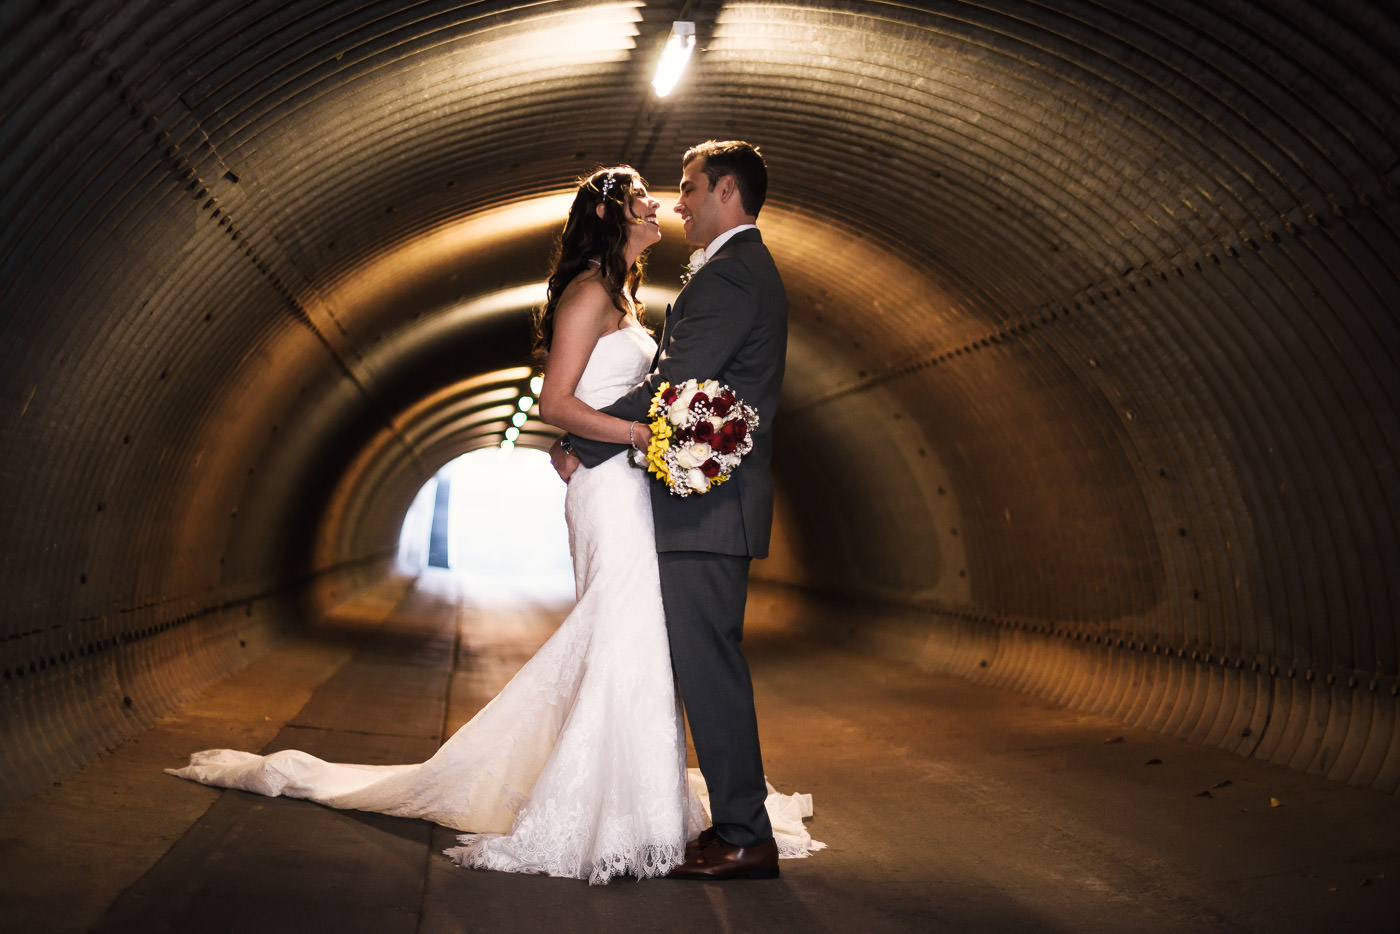 The tunnel at the Alta Vista Country Club makes the perfect backdrop for romantic wedding photos.